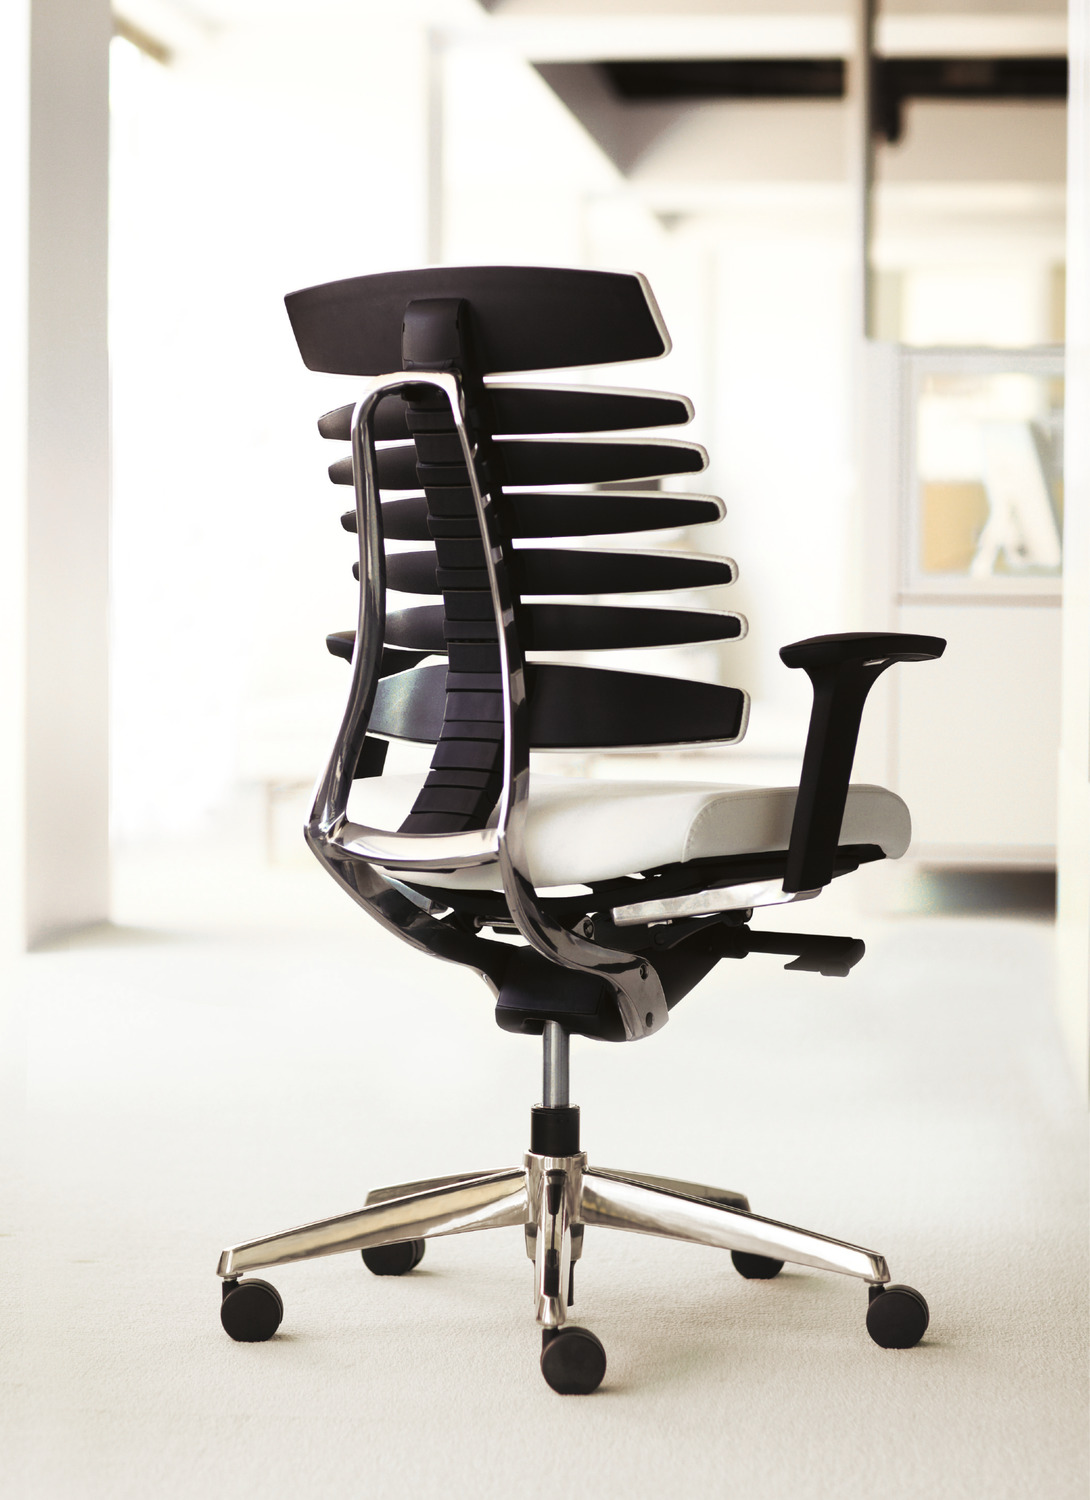 RBT Task Chair - 3/4 View Back - Polished Aluminum Base.psd